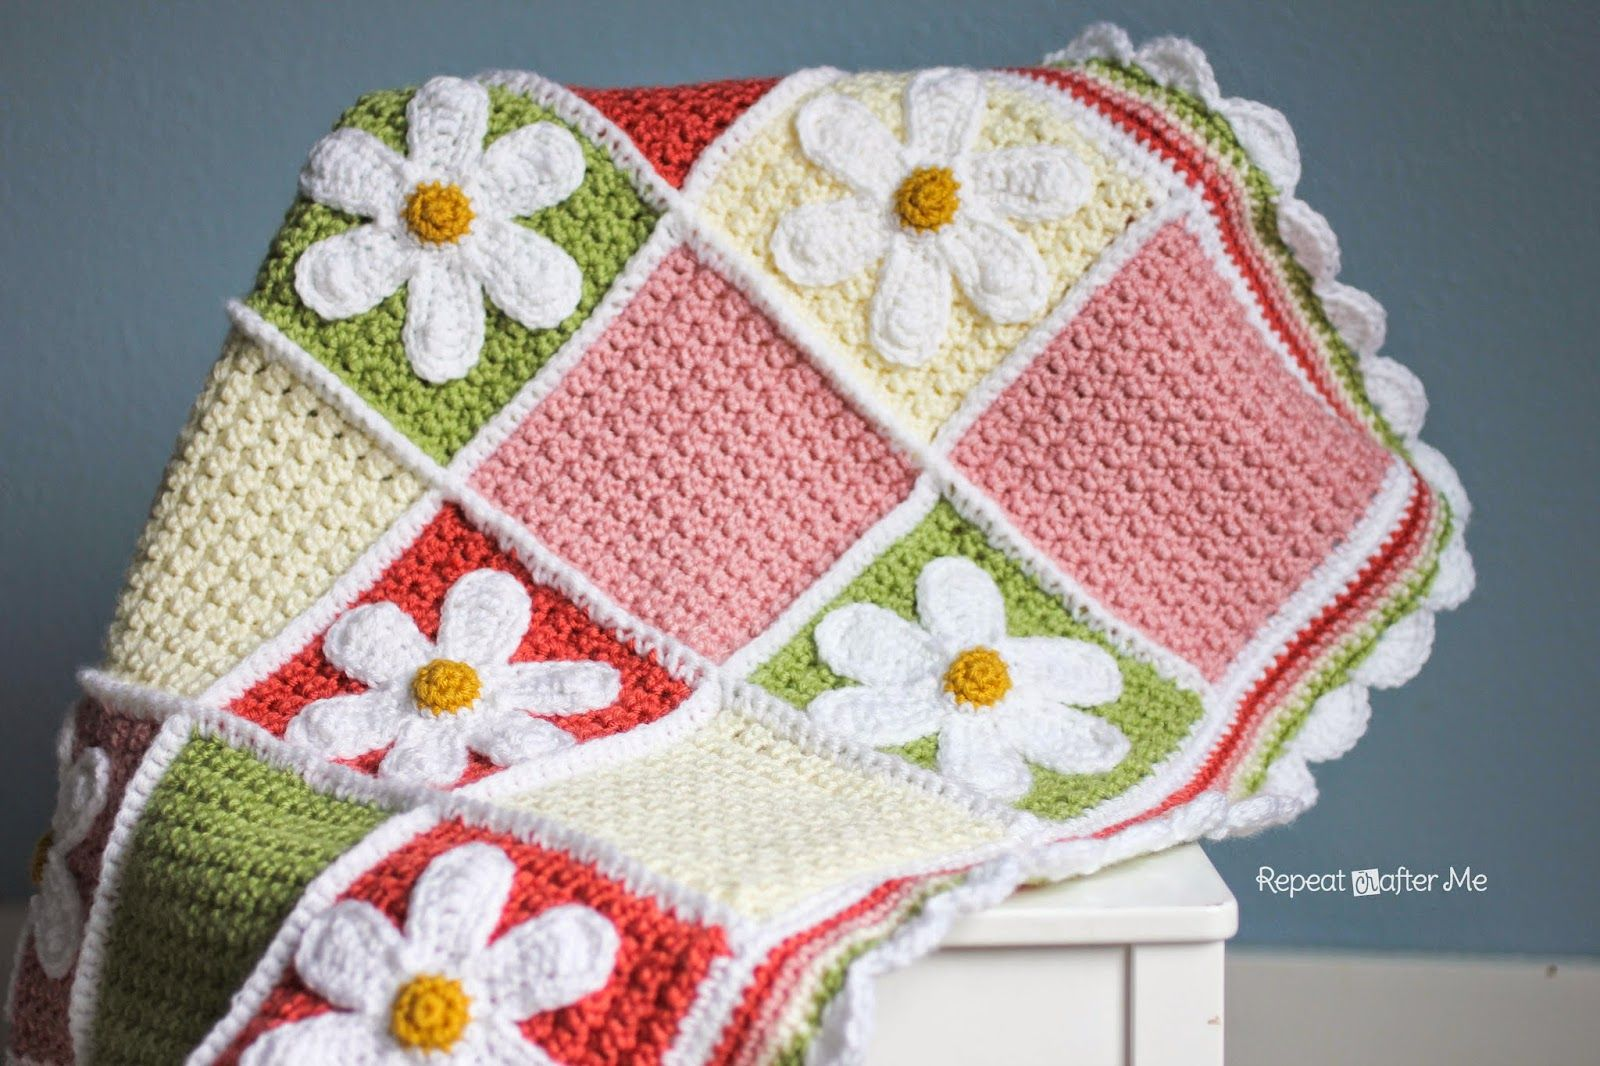 Crochet Daisy Afghan - Repeat Crafter Me | Crochet daisy, Crochet granny  square afghan, Baby blanket pattern